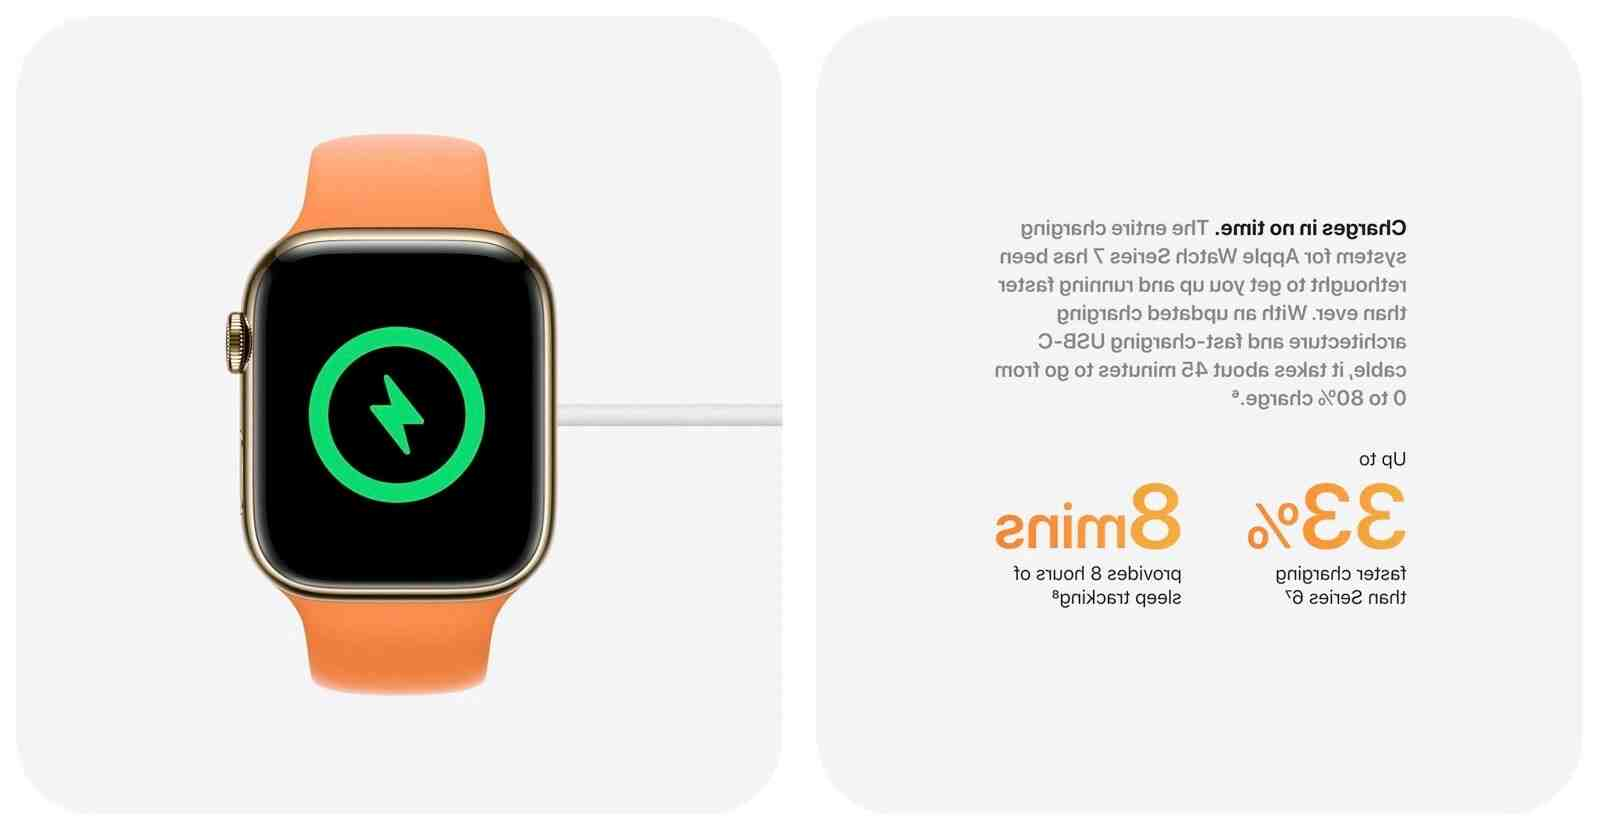 Comment recharger apple watch